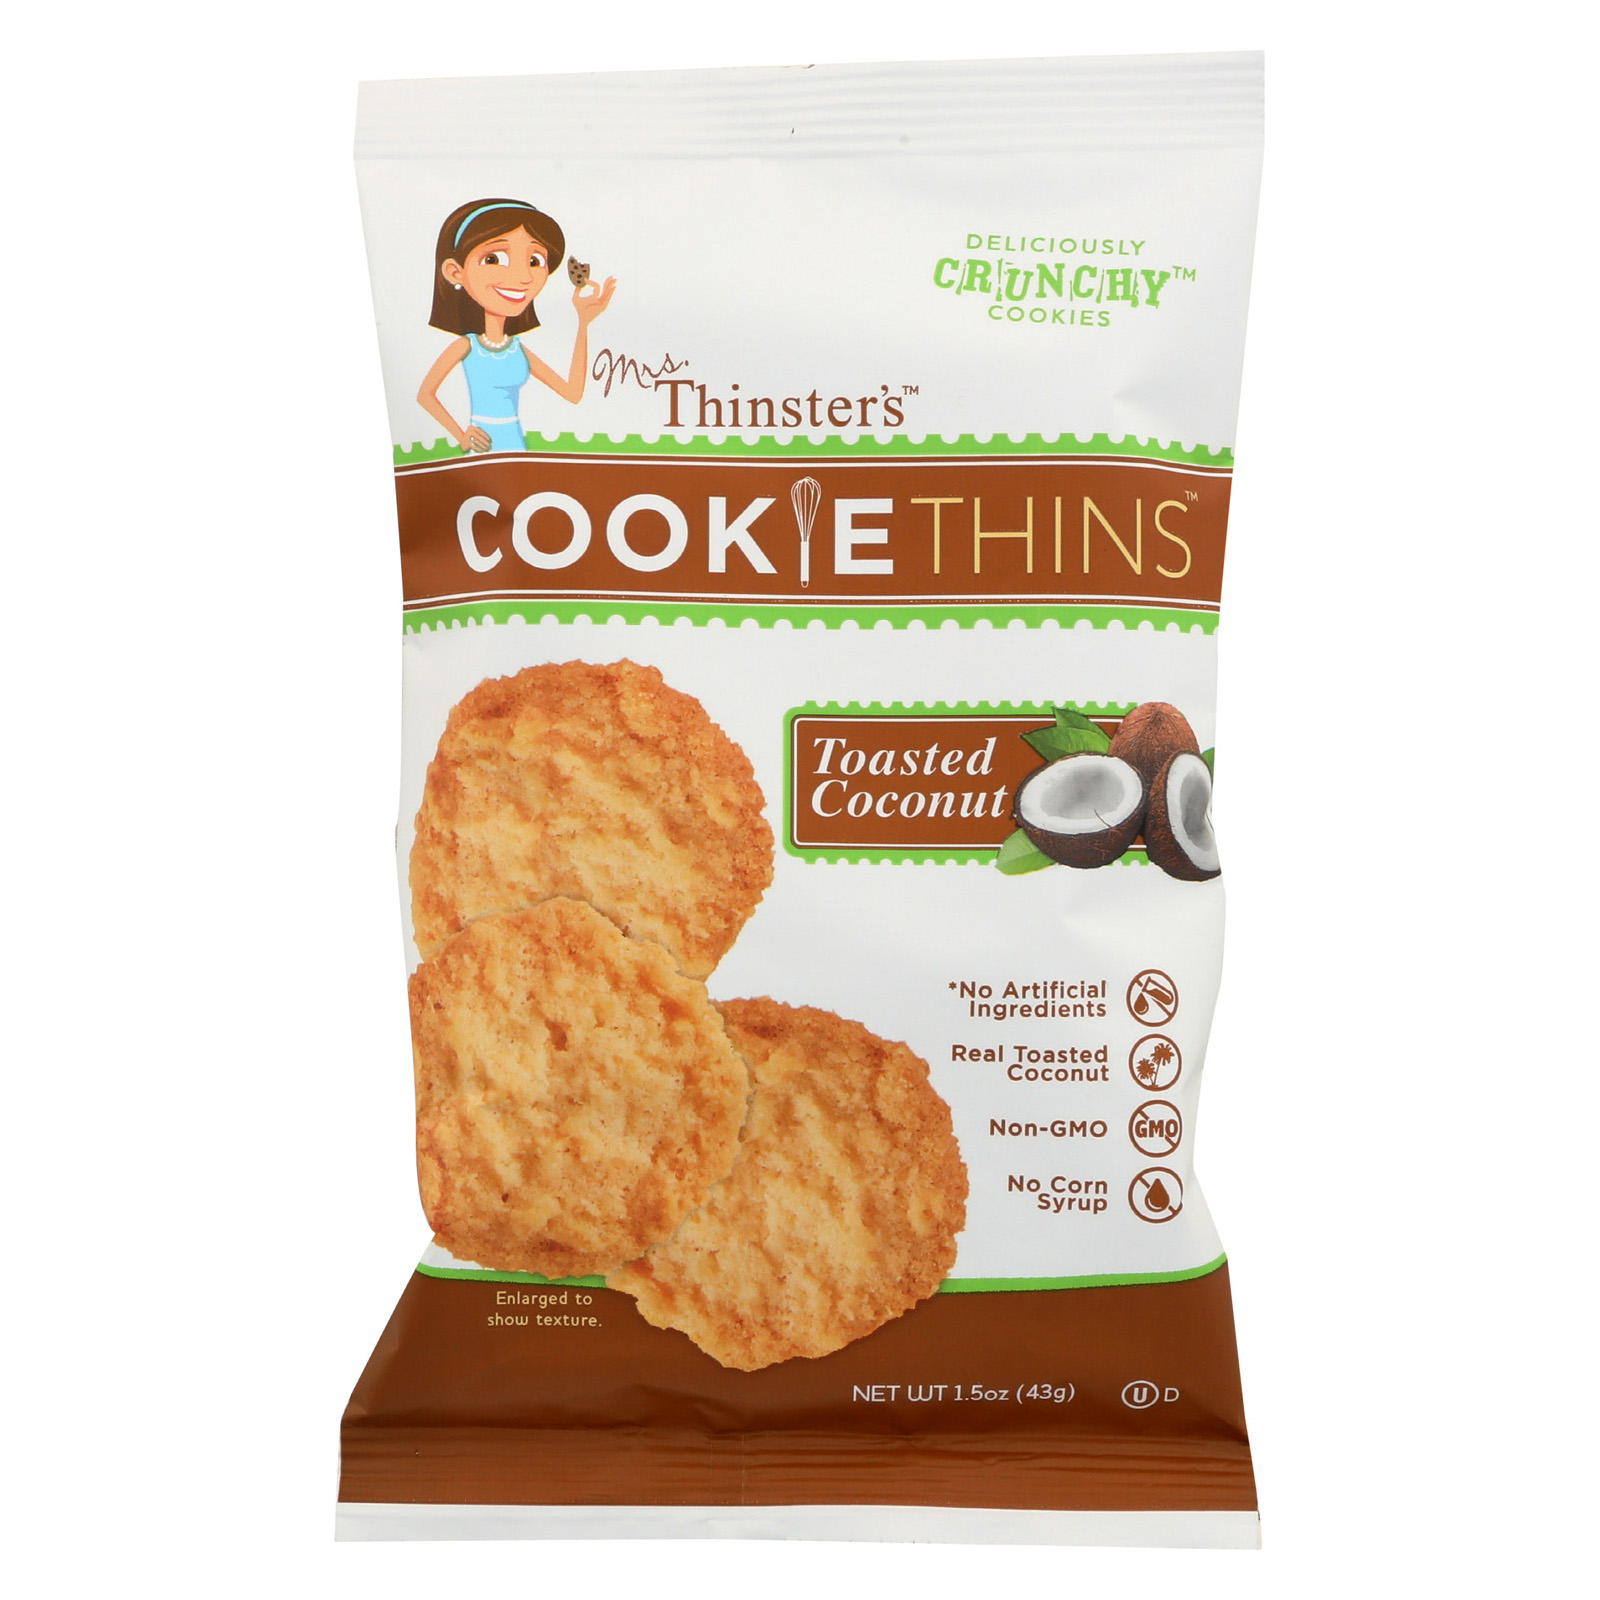 Mrs. Thinster's Cookie Thins, Coconut Flavor, Thin Crunchy Cookies, Non-GMO, No Artificial Flavors, Colors, Preservatives, Peanut-Free, 8-1.5oz Bags